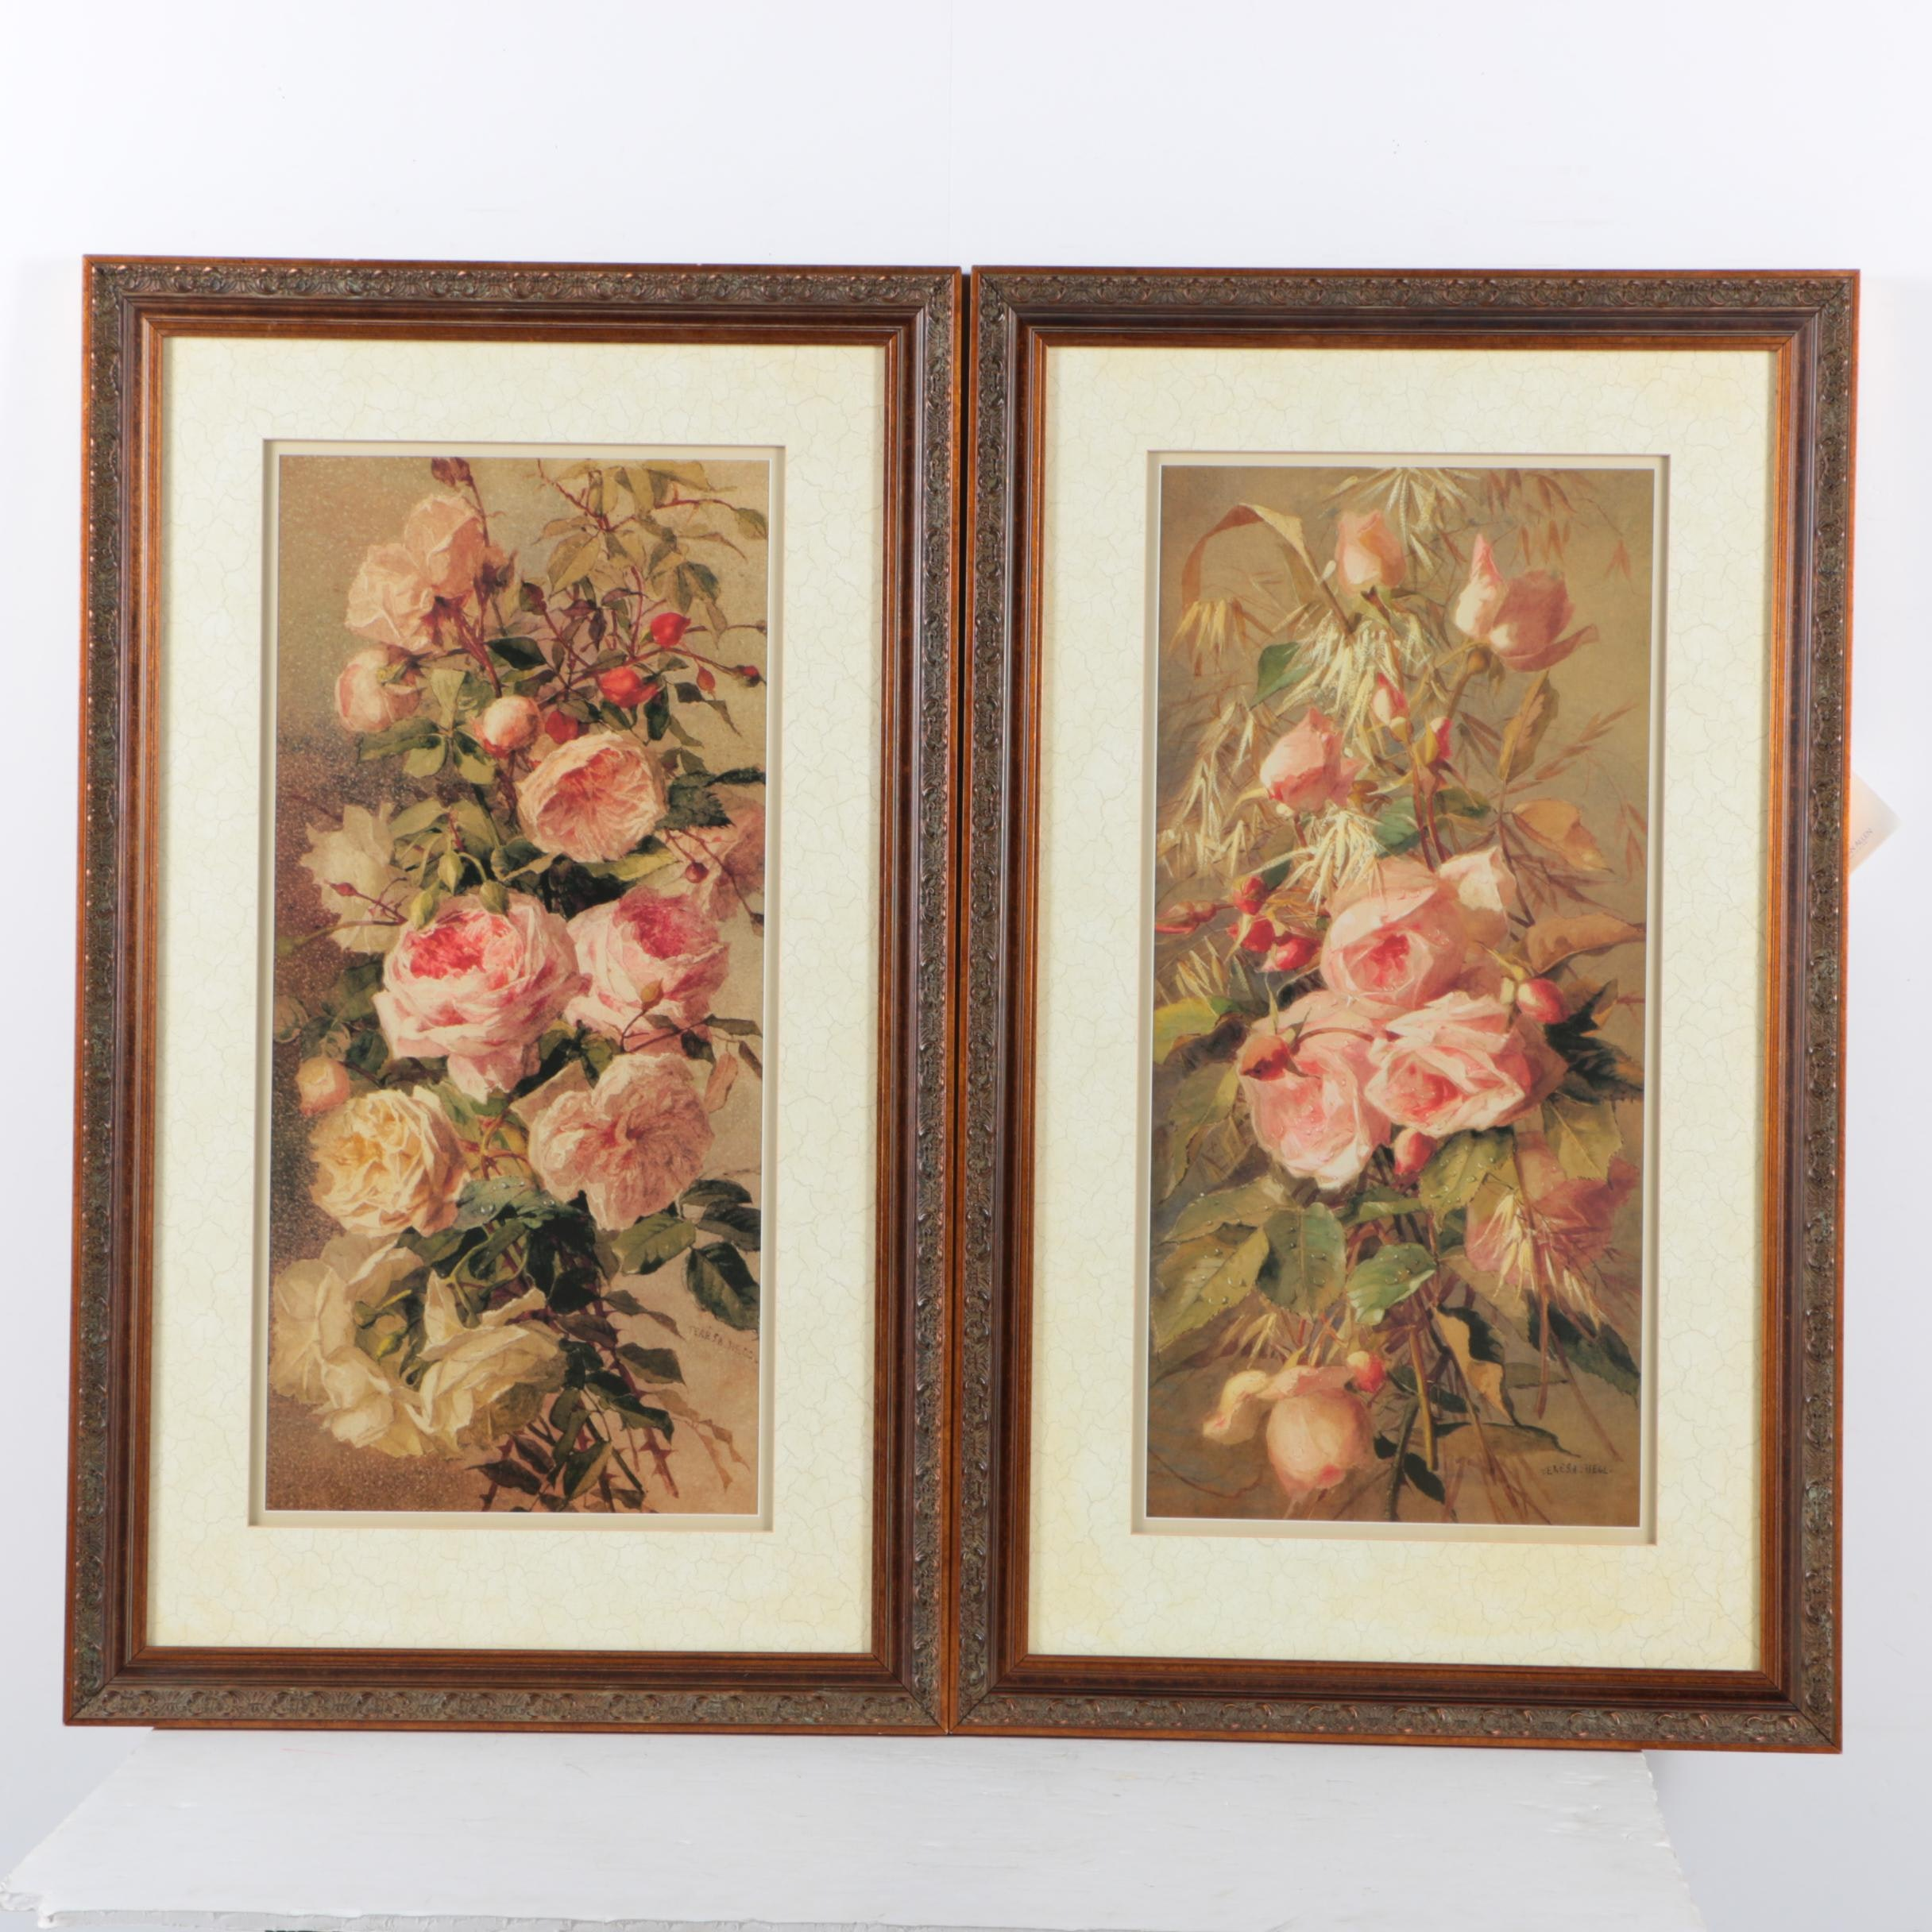 Offset Lithographs on Paper After Theresa Hegg of Roses